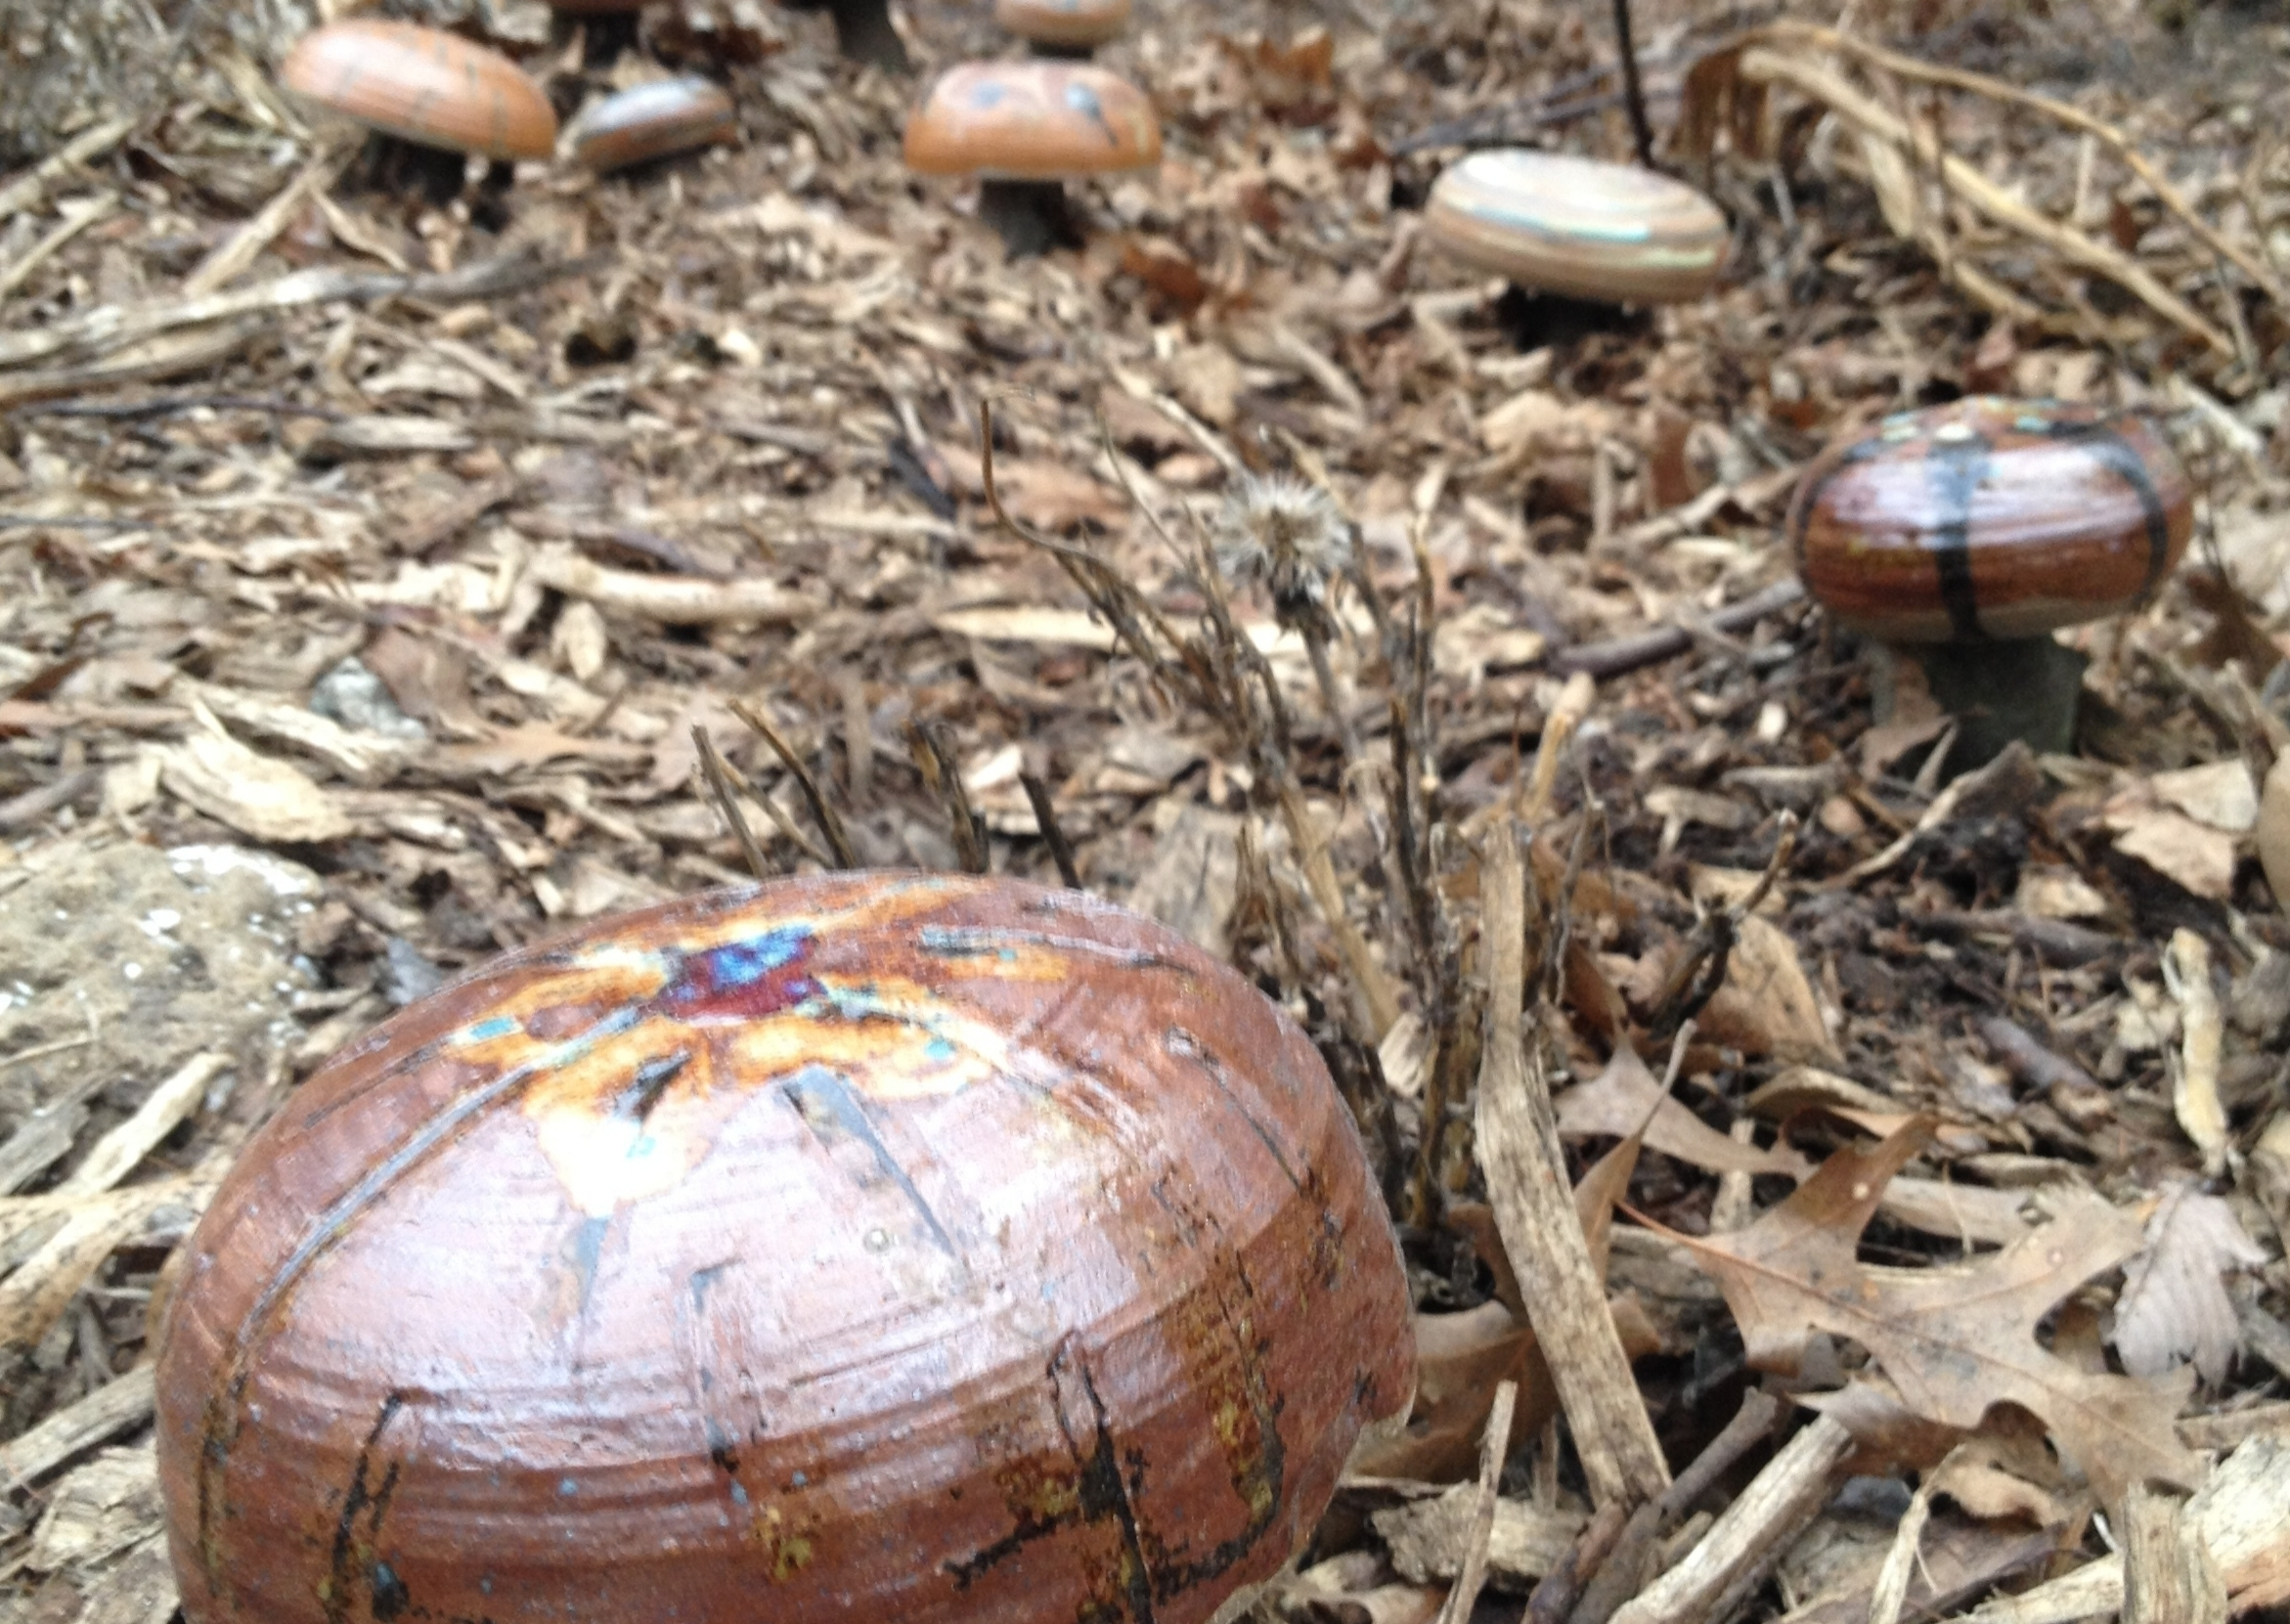 Integrate - Seam the beauty and flavor of the Fungal Queendom into your home landscapeAre you already an avid gardener who takes pride in your beautiful, urban landscape? Learn how mushrooms can be integrated into your existing garden space. Our permaculture inspired mushroom gardens are as aesthetically pleasing as they are abundant. Check out our Integrate page to see real and inspired ideas, set-up a consultation with us, and learn how mushrooms can naturally improve soil health (i.e. reduce the need for harmful chemicals).